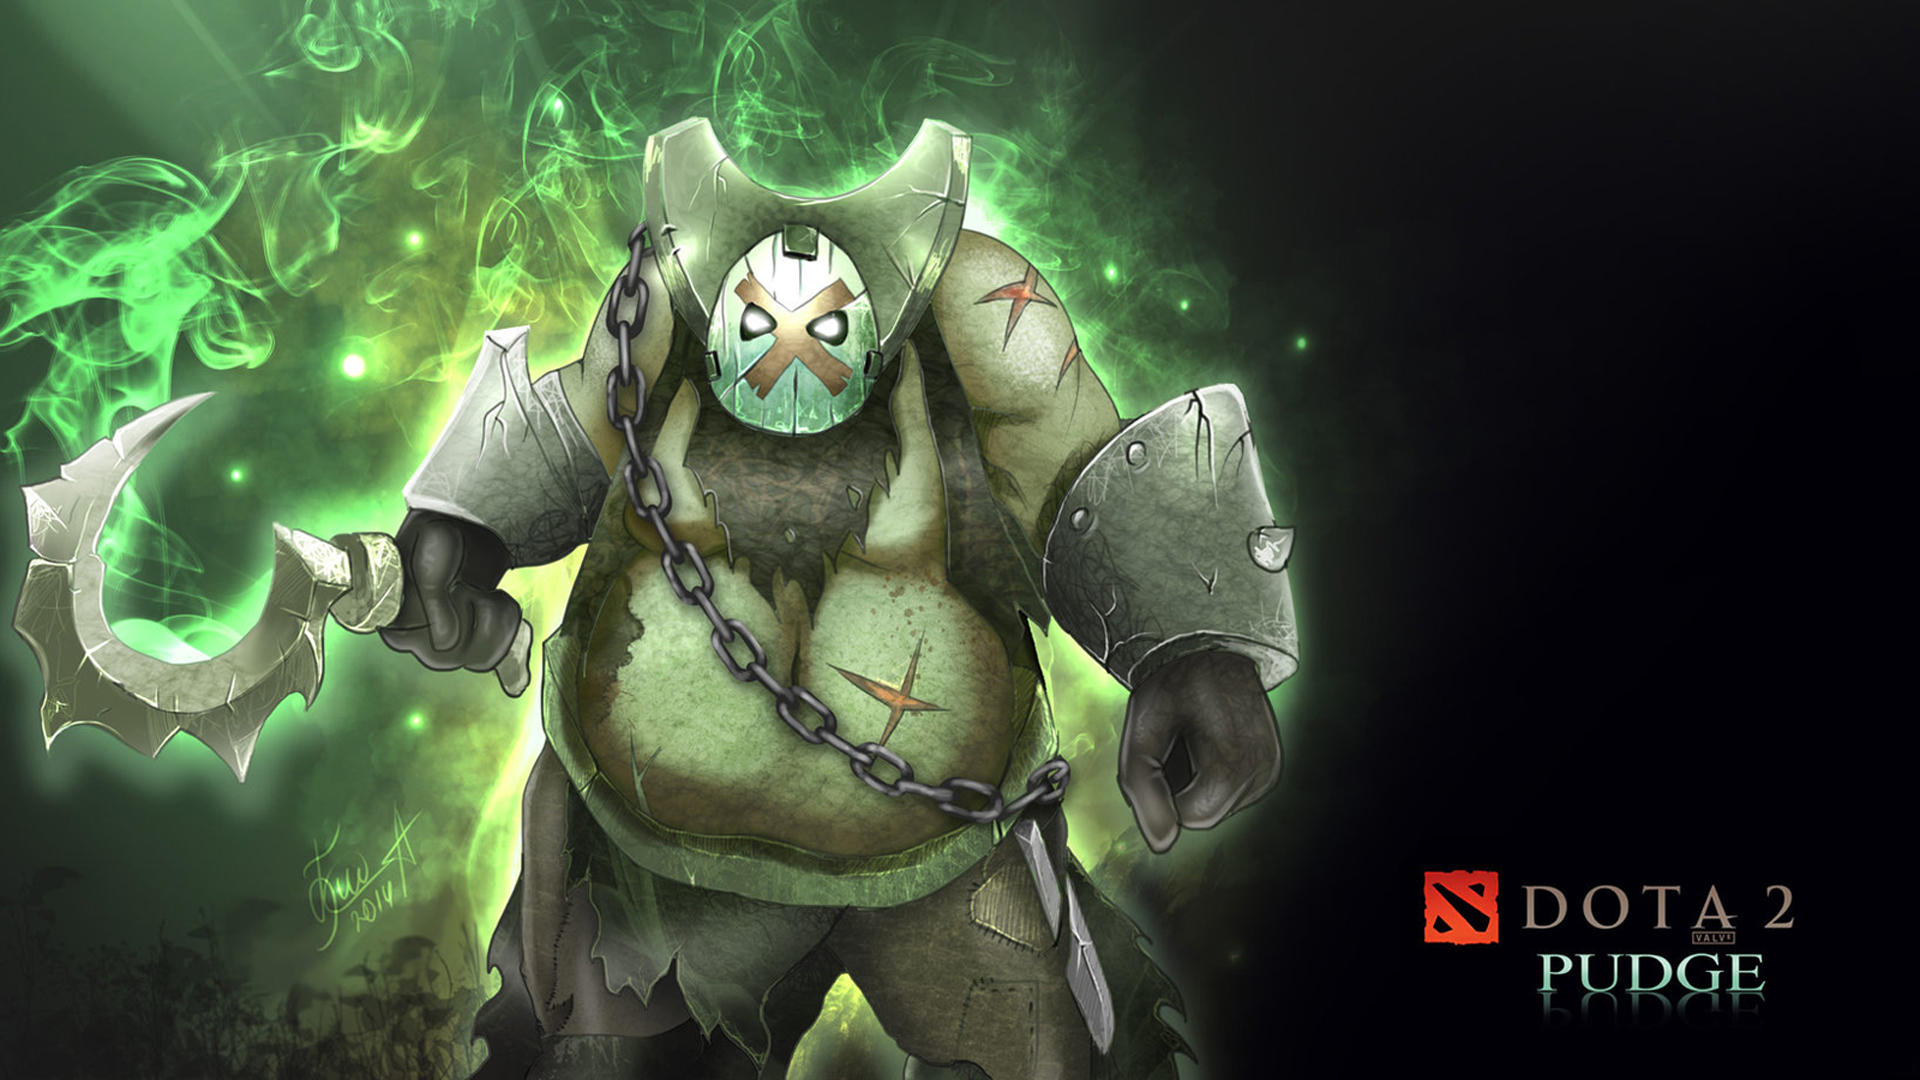 dota 2 pudge art 0b wallpaper hd